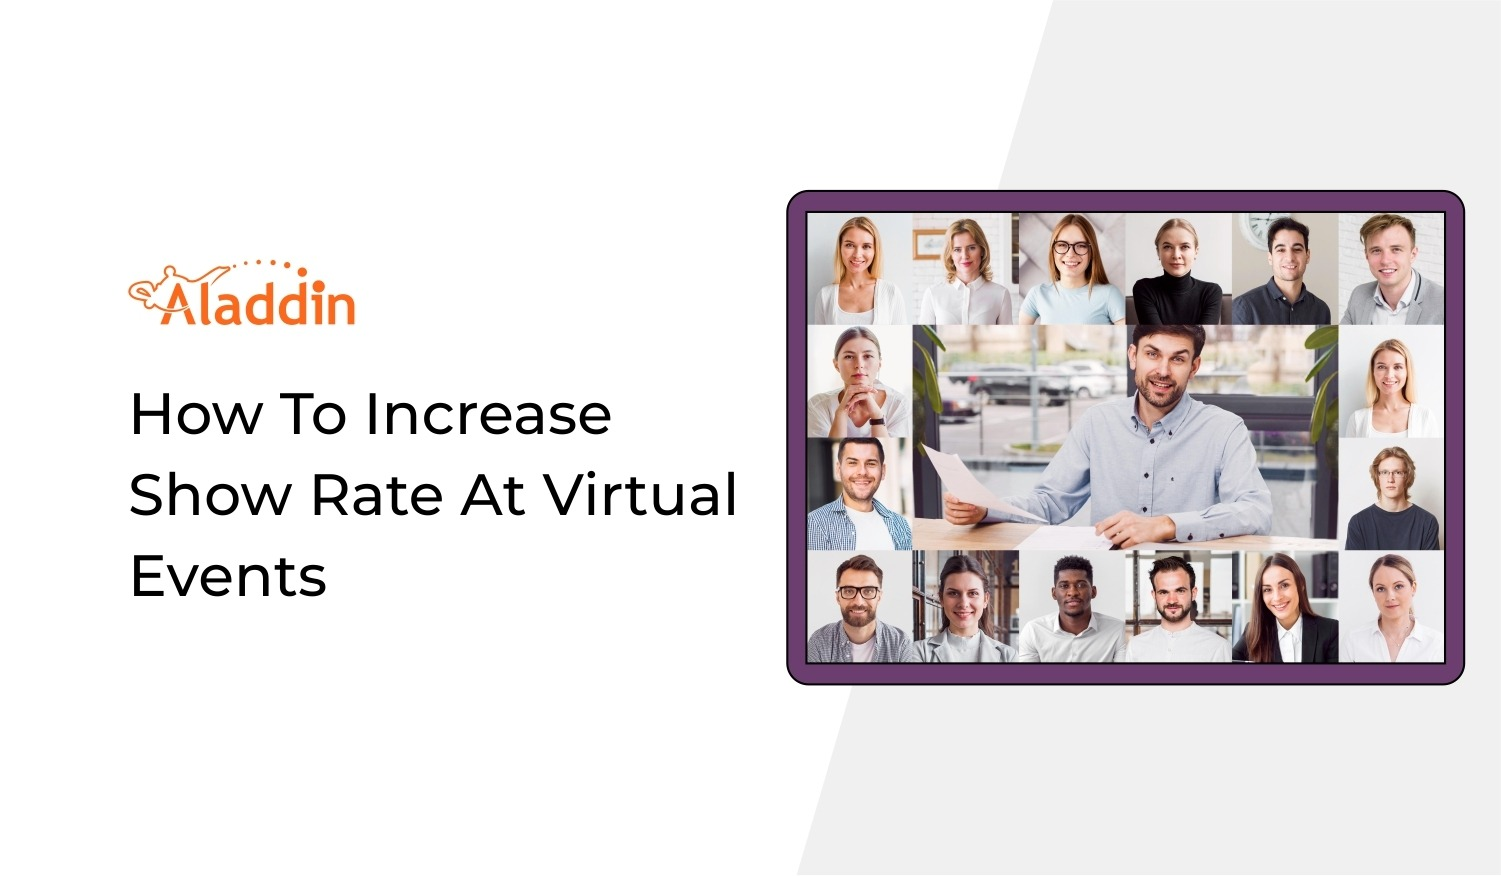 How To Increase Show Rate At Virtual Events